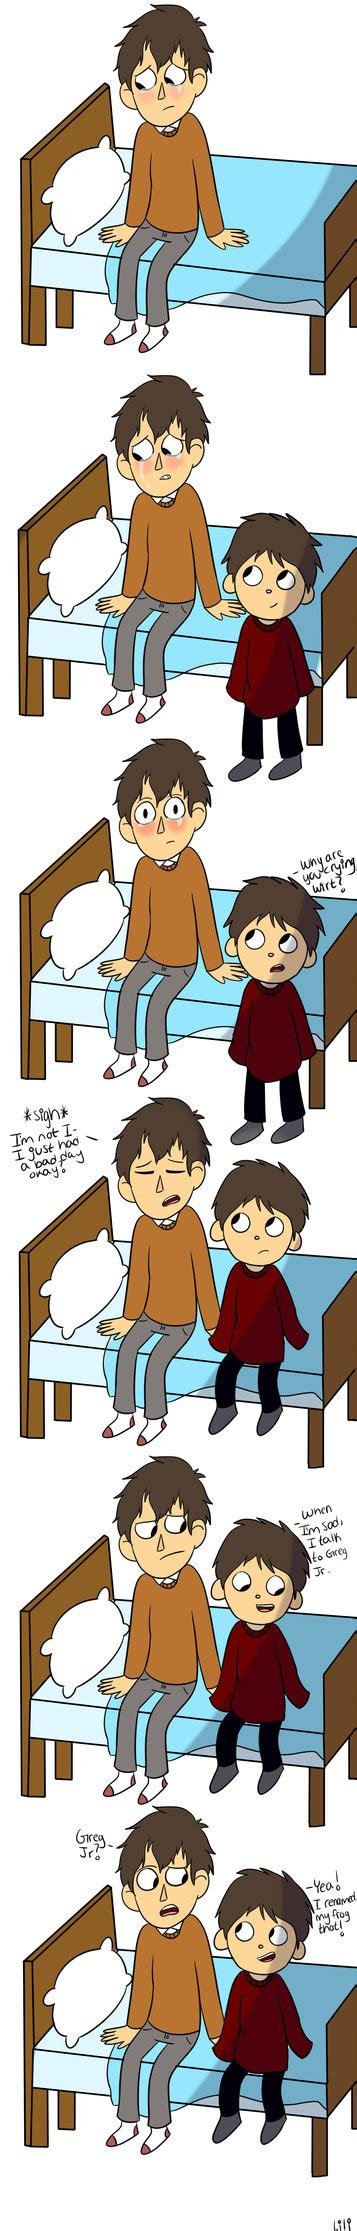 Trying Day For N Word Comic by Bad Day Comic Pg1 By Matryoshkamorgue On Deviantart